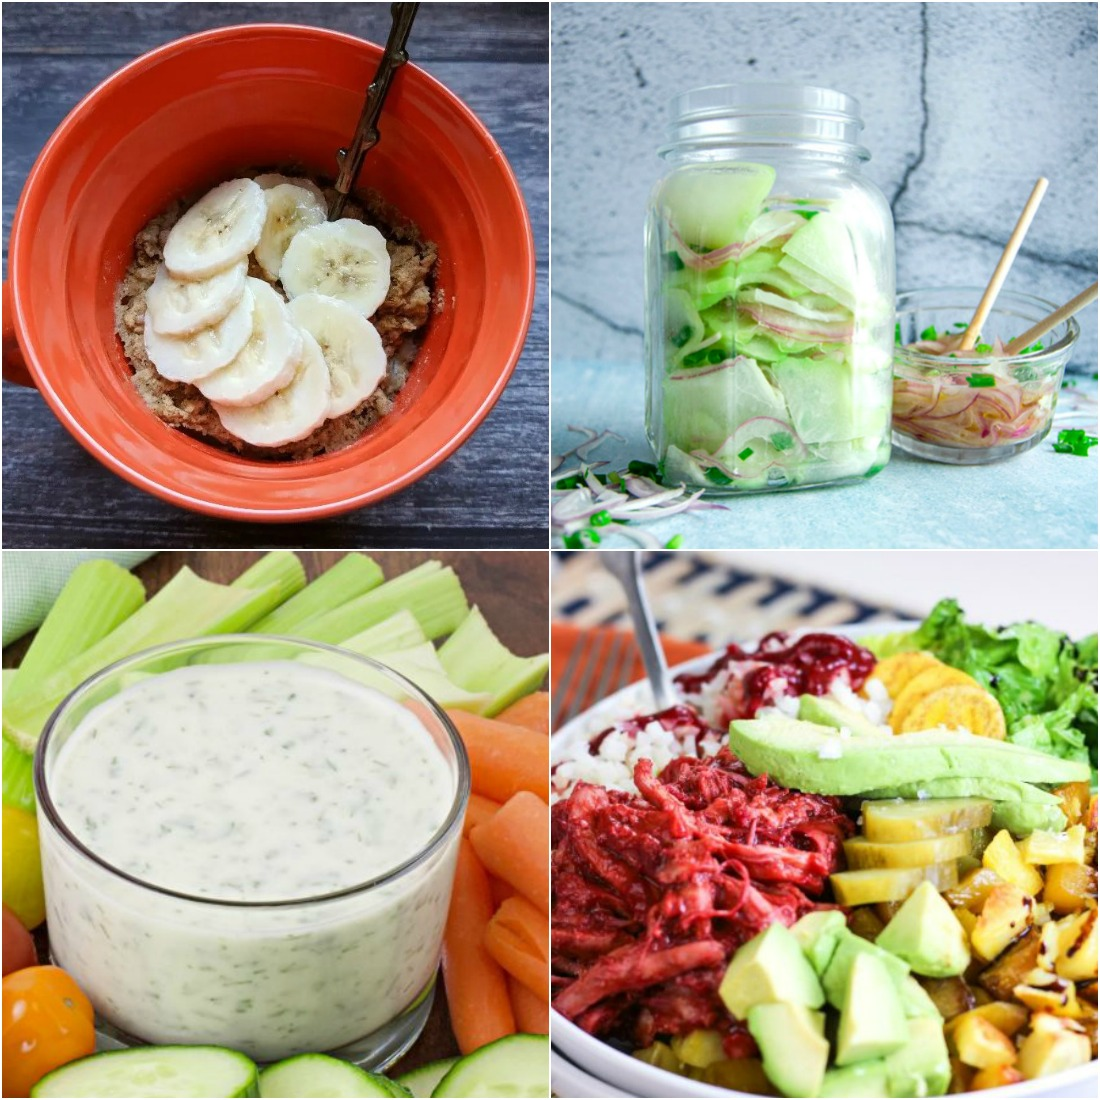 Paleo AIP Recipe Roundtable #329 | Phoenix Helix - *Featured Recipes: Homemade Ranch Dip, Summer Chayote Squash Salad, BBQ Chicken Salad Bowl, and 109 Breakfast Recipes